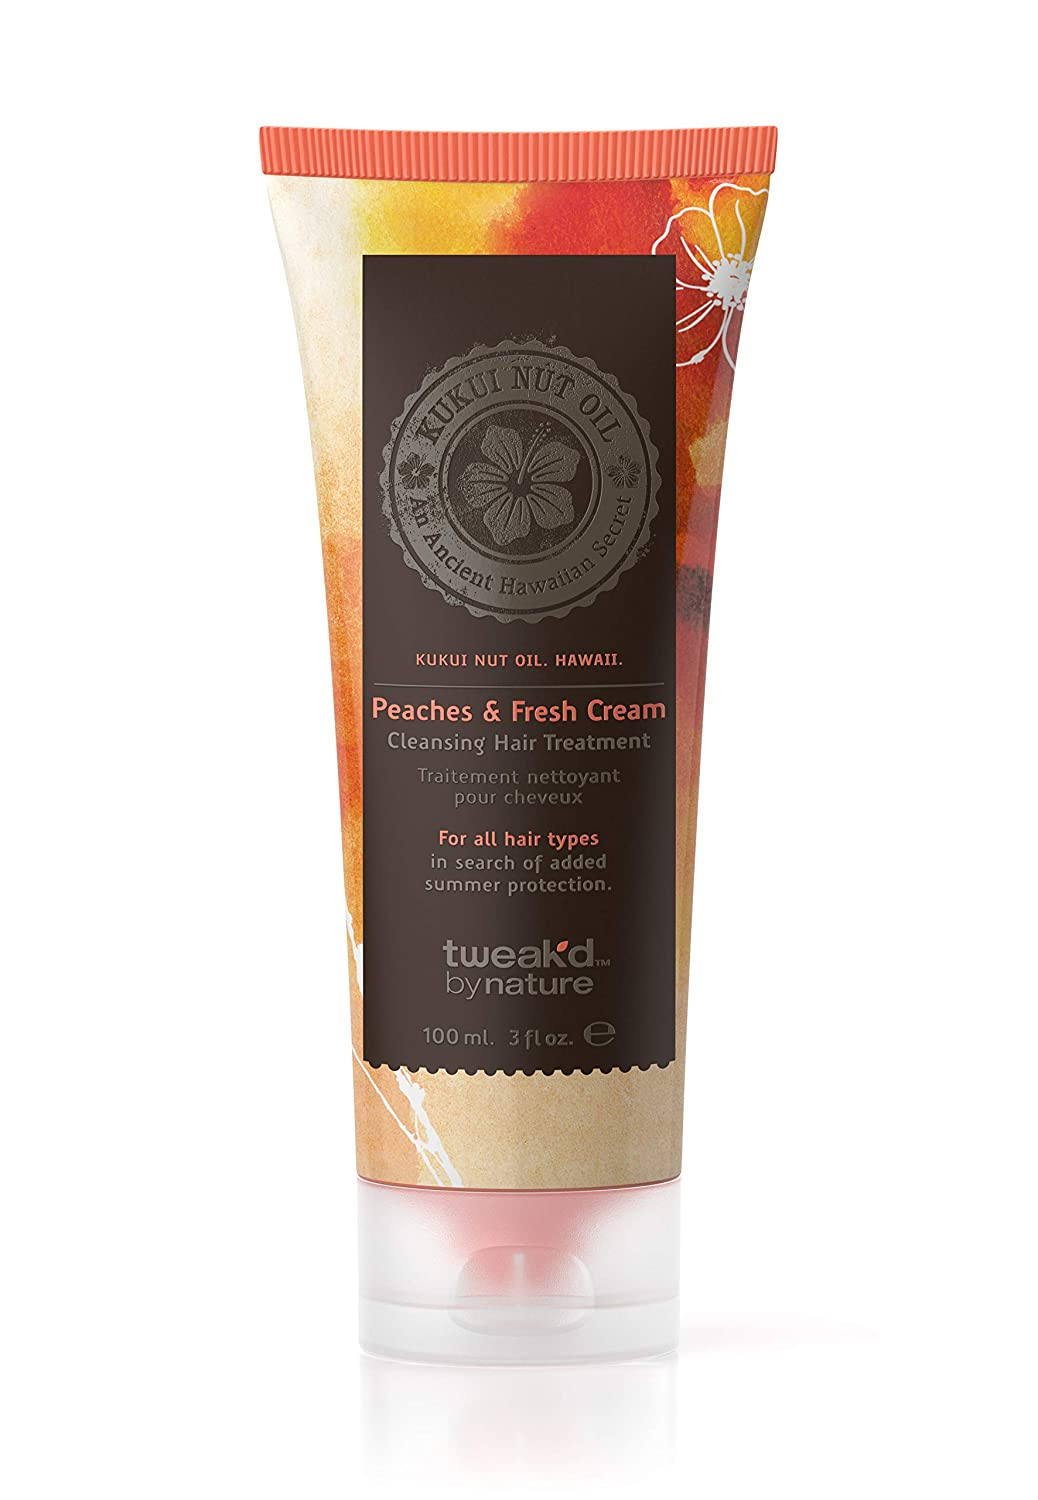 Tweak-d 5 in 1 formula Self-Cleansing Hair Treatment ~ Peaches & Cream